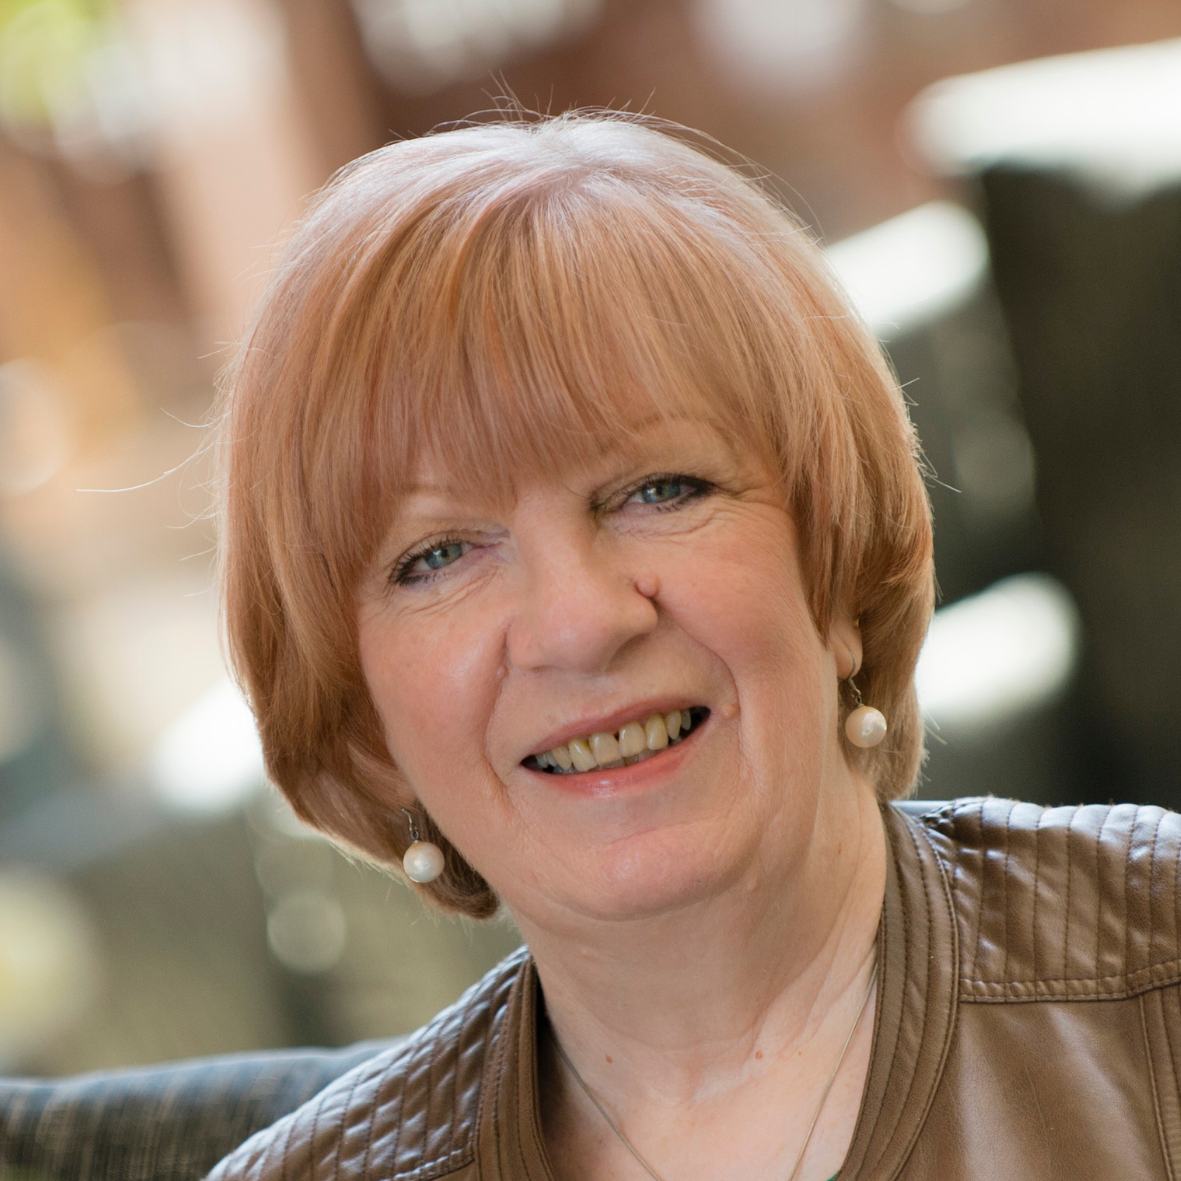 Sue is an expert in Business Health & Employee Wellbeing. She believes that by looking after our people, our businesses will be healthier and more productive. Using data and measuring tools to set benchmarks we'll see the results of changes and actions in our business growth, productivity and financial turnover.